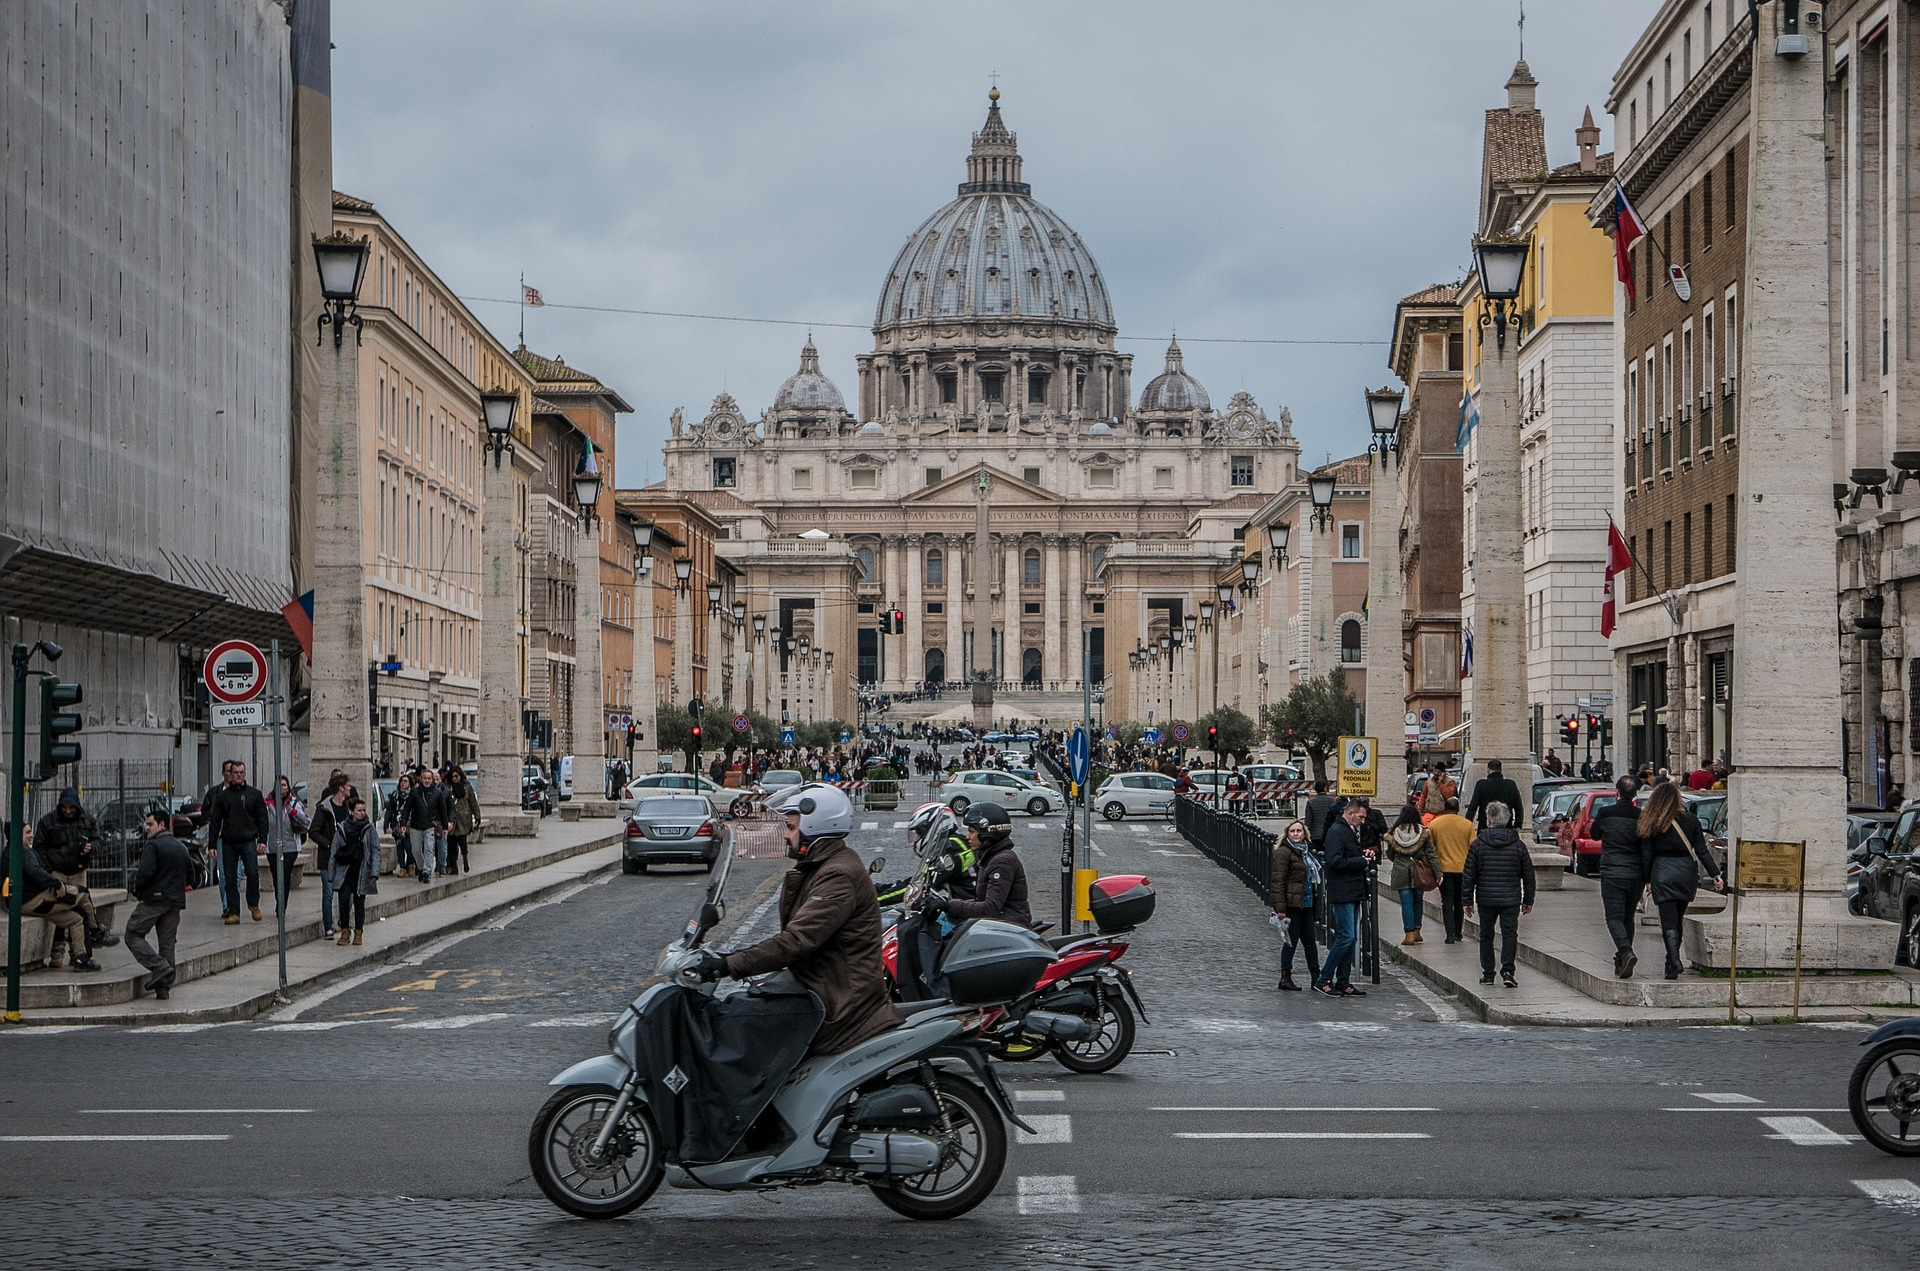 Scooters outside St. Peter's Basilica, Rome